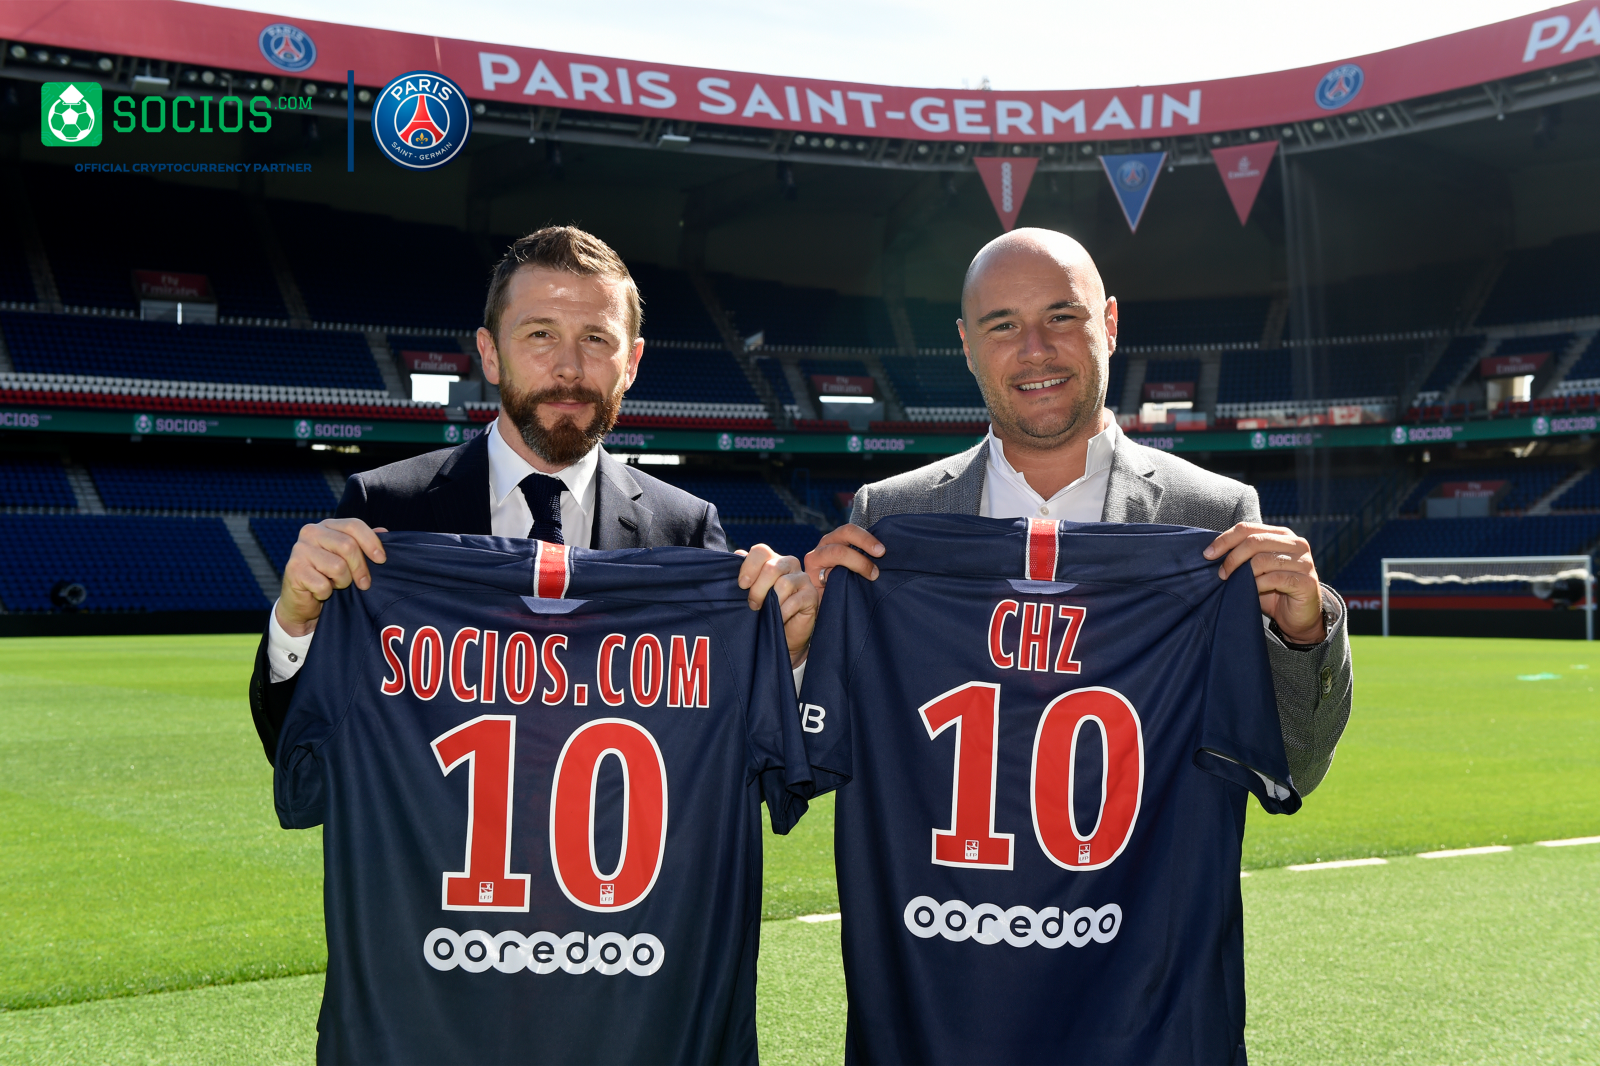 891d49fce372d PARIS SAINT GERMAIN KICKS OFF INNOVATIVE BLOCKCHAIN PARTNERSHIP WITH  SOCIOS.COM